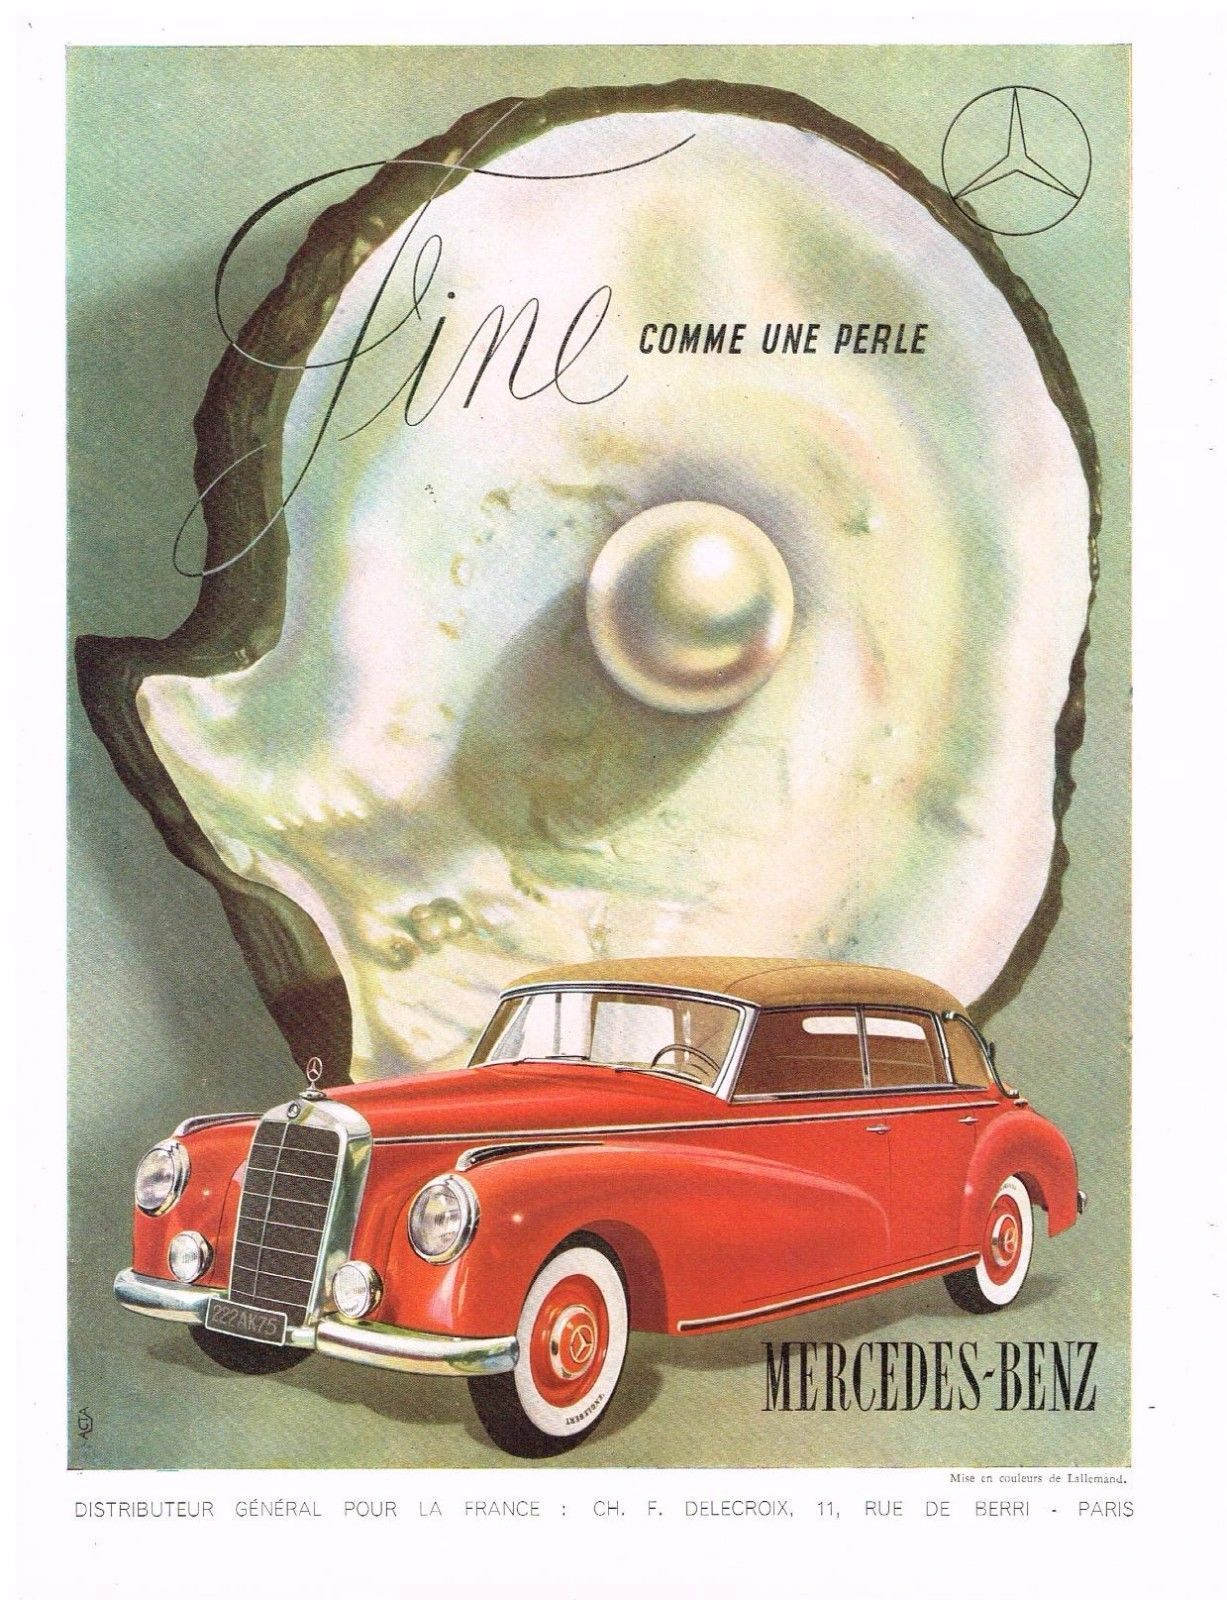 Original MERCEDES-BENZ CAR AD AUTOMOBILIA 1950s Vintage Print Advertising SSV • AUD 34.56 - PicClick AU